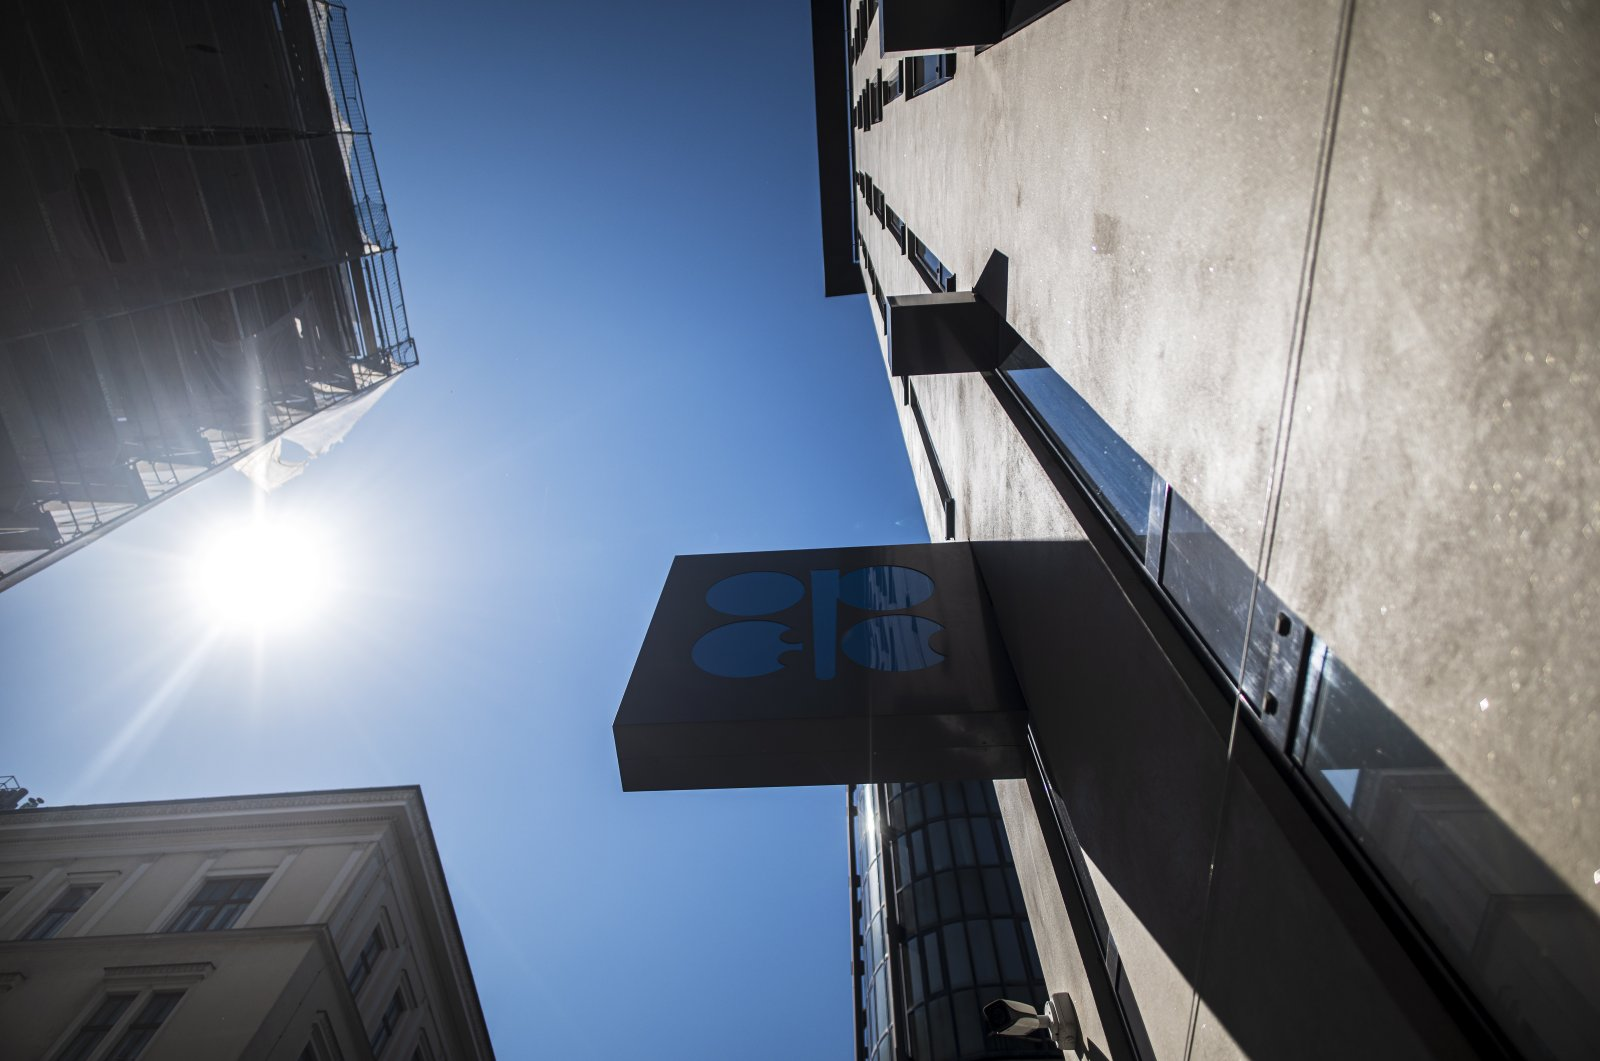 An exterior view of the Organization of Petroleum Exporting Countries (OPEC) headquarters in Vienna, Austria, April 9, 2020. (EPA Photo)